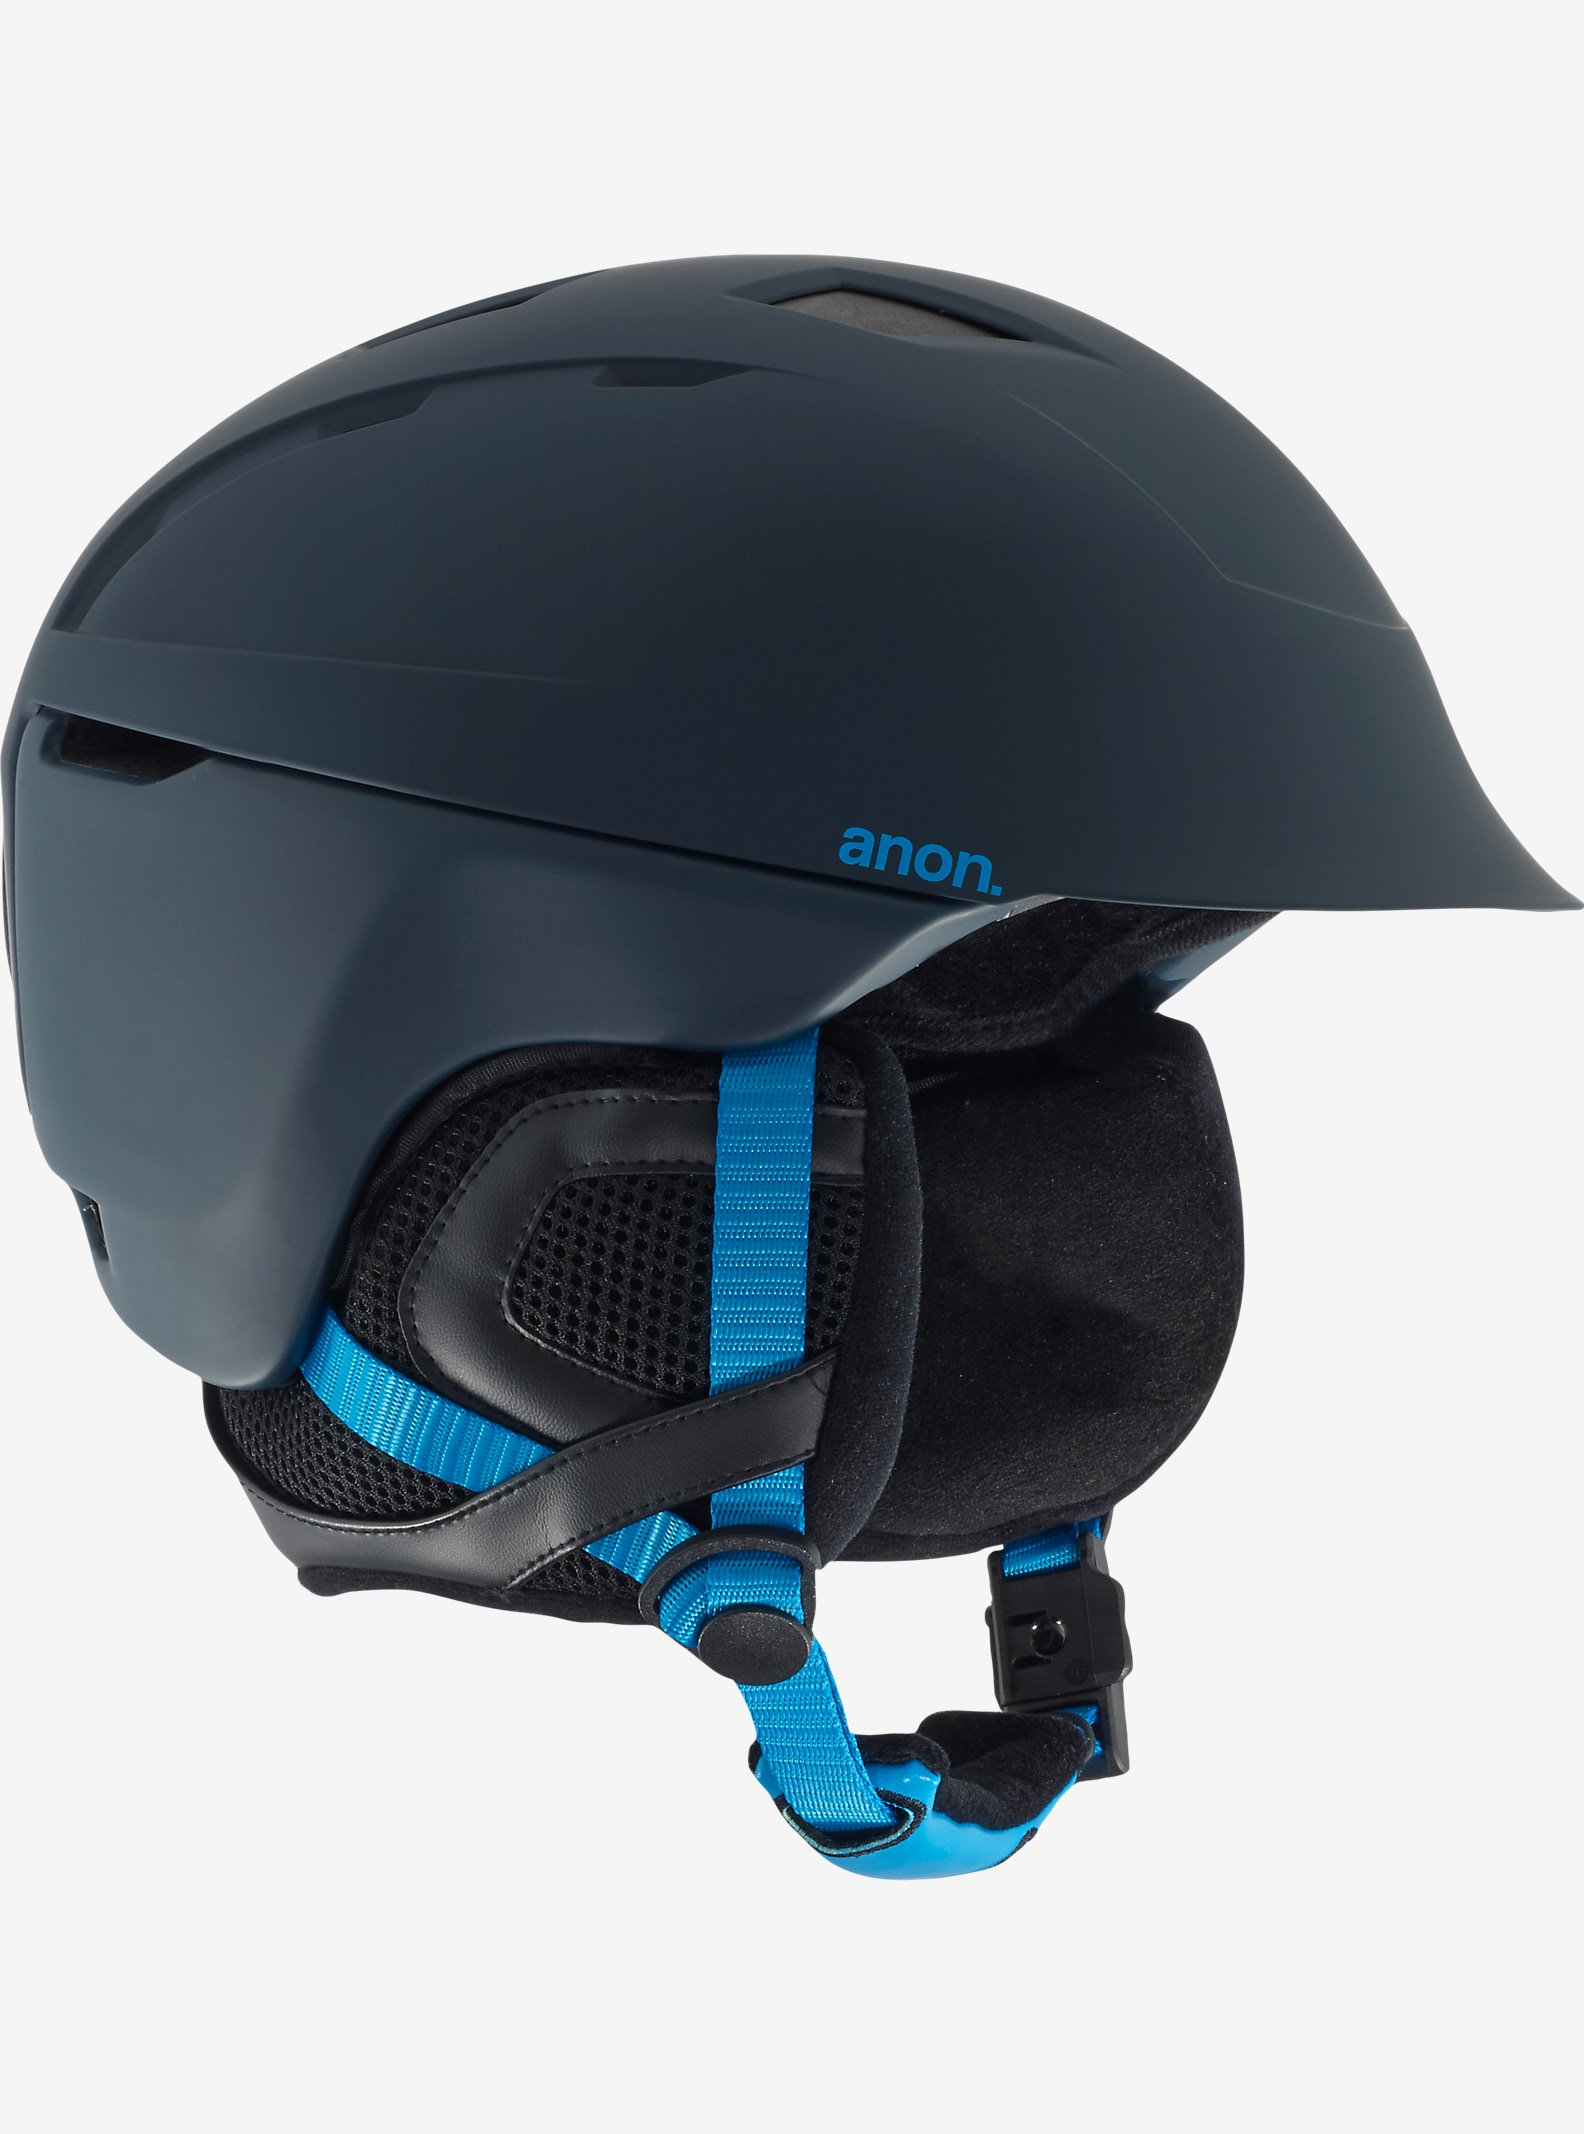 anon. Thompson Helmet shown in Midnight Blue